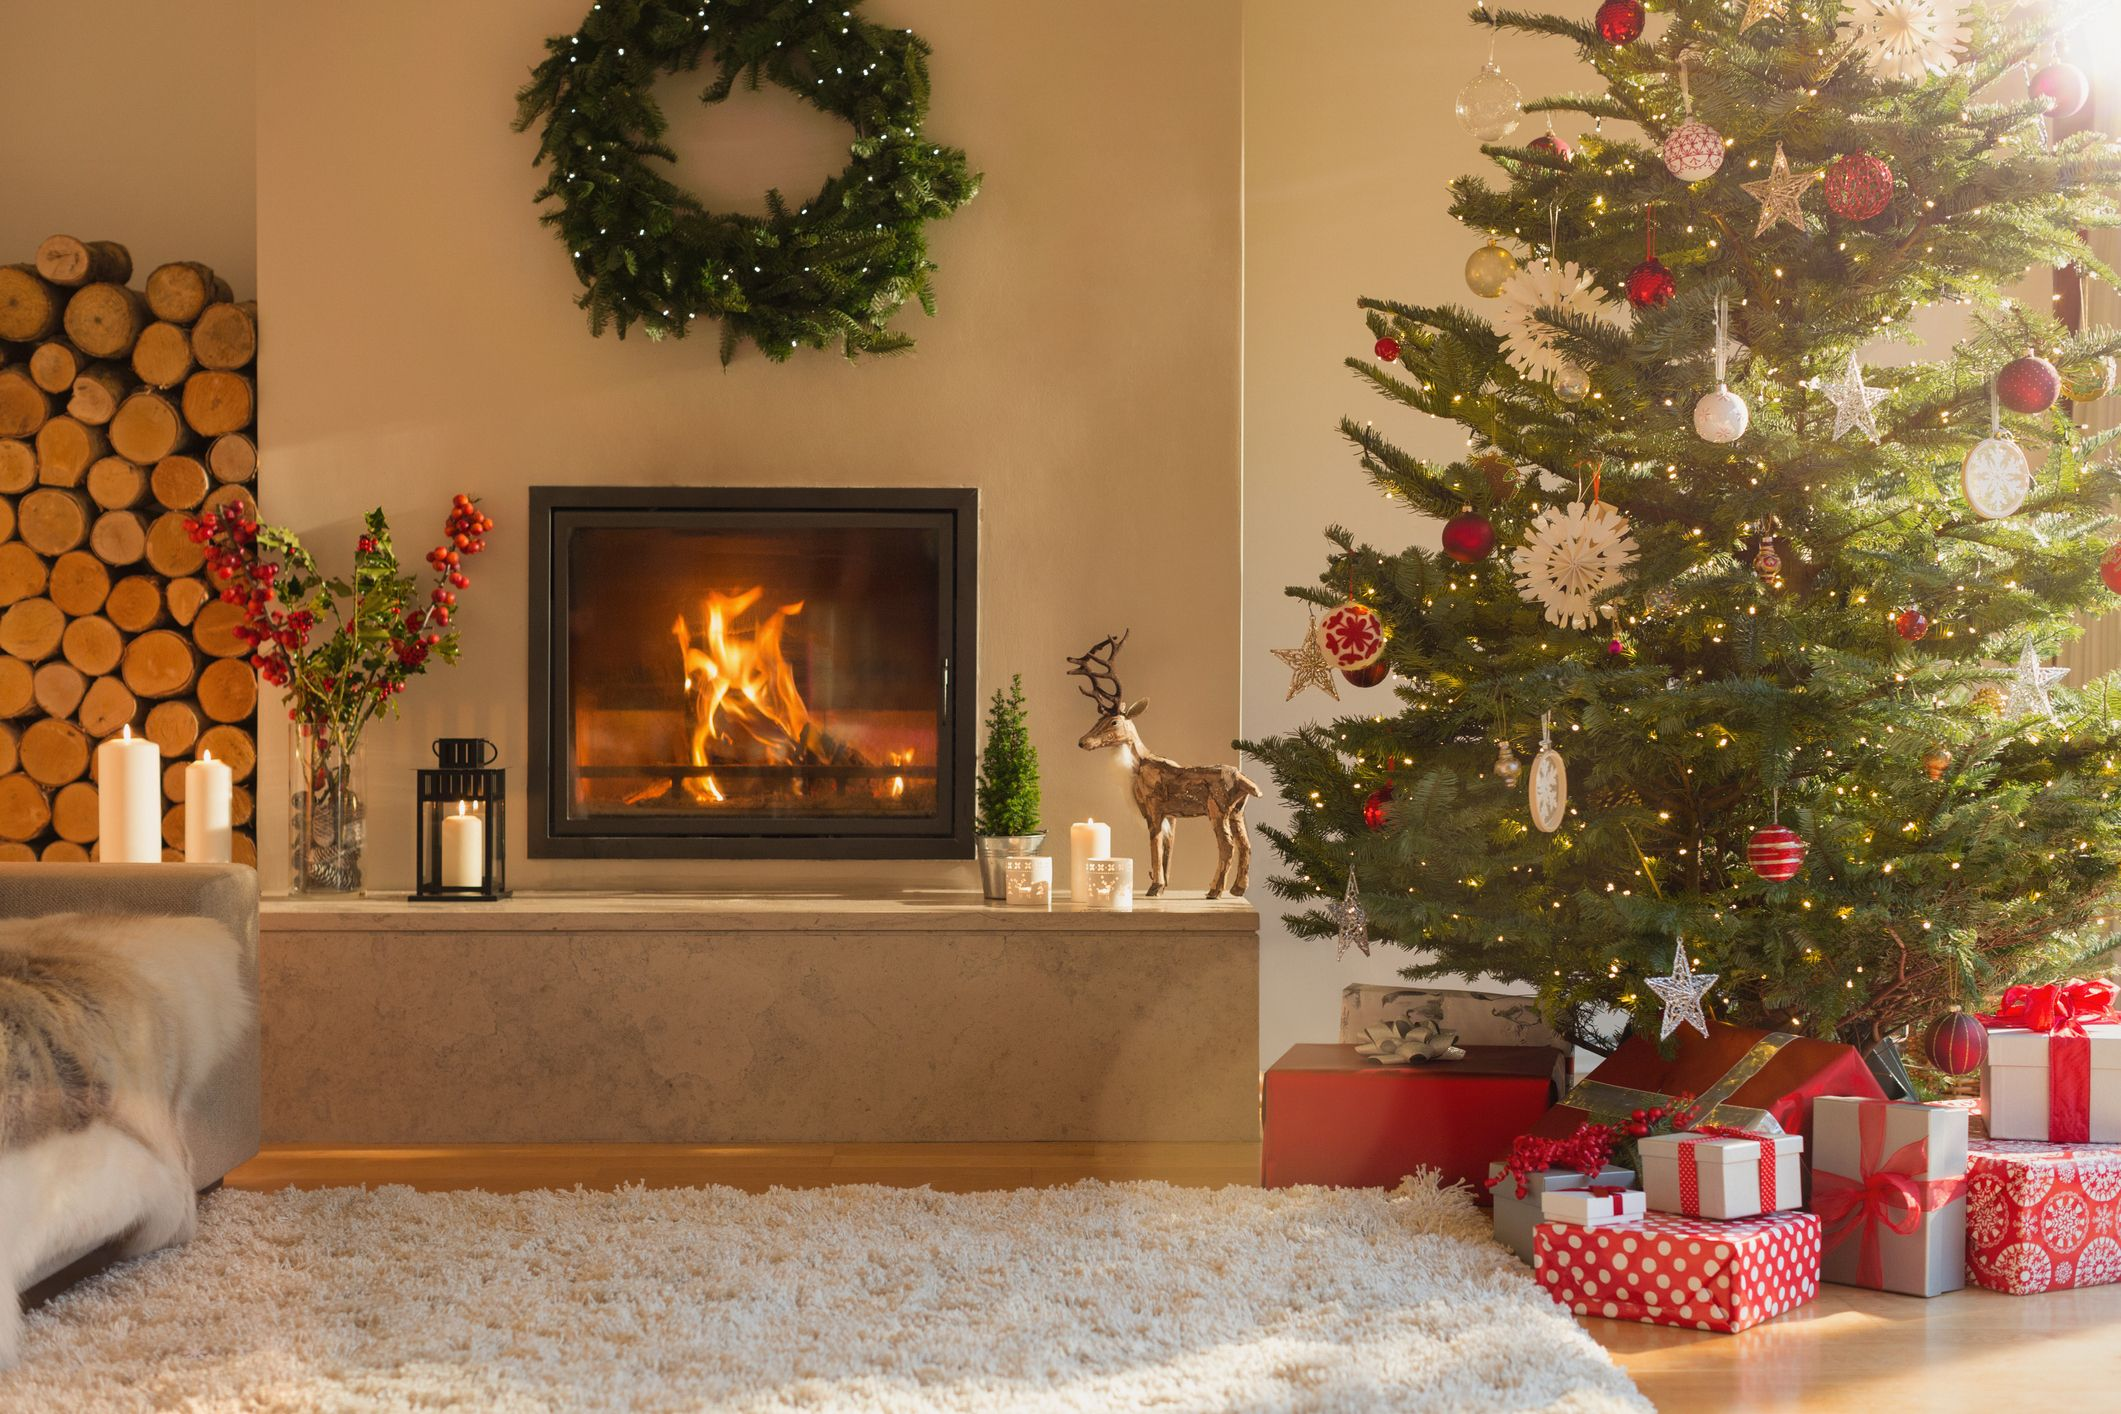 How to choose and care for your Christmas tree for the best one yet